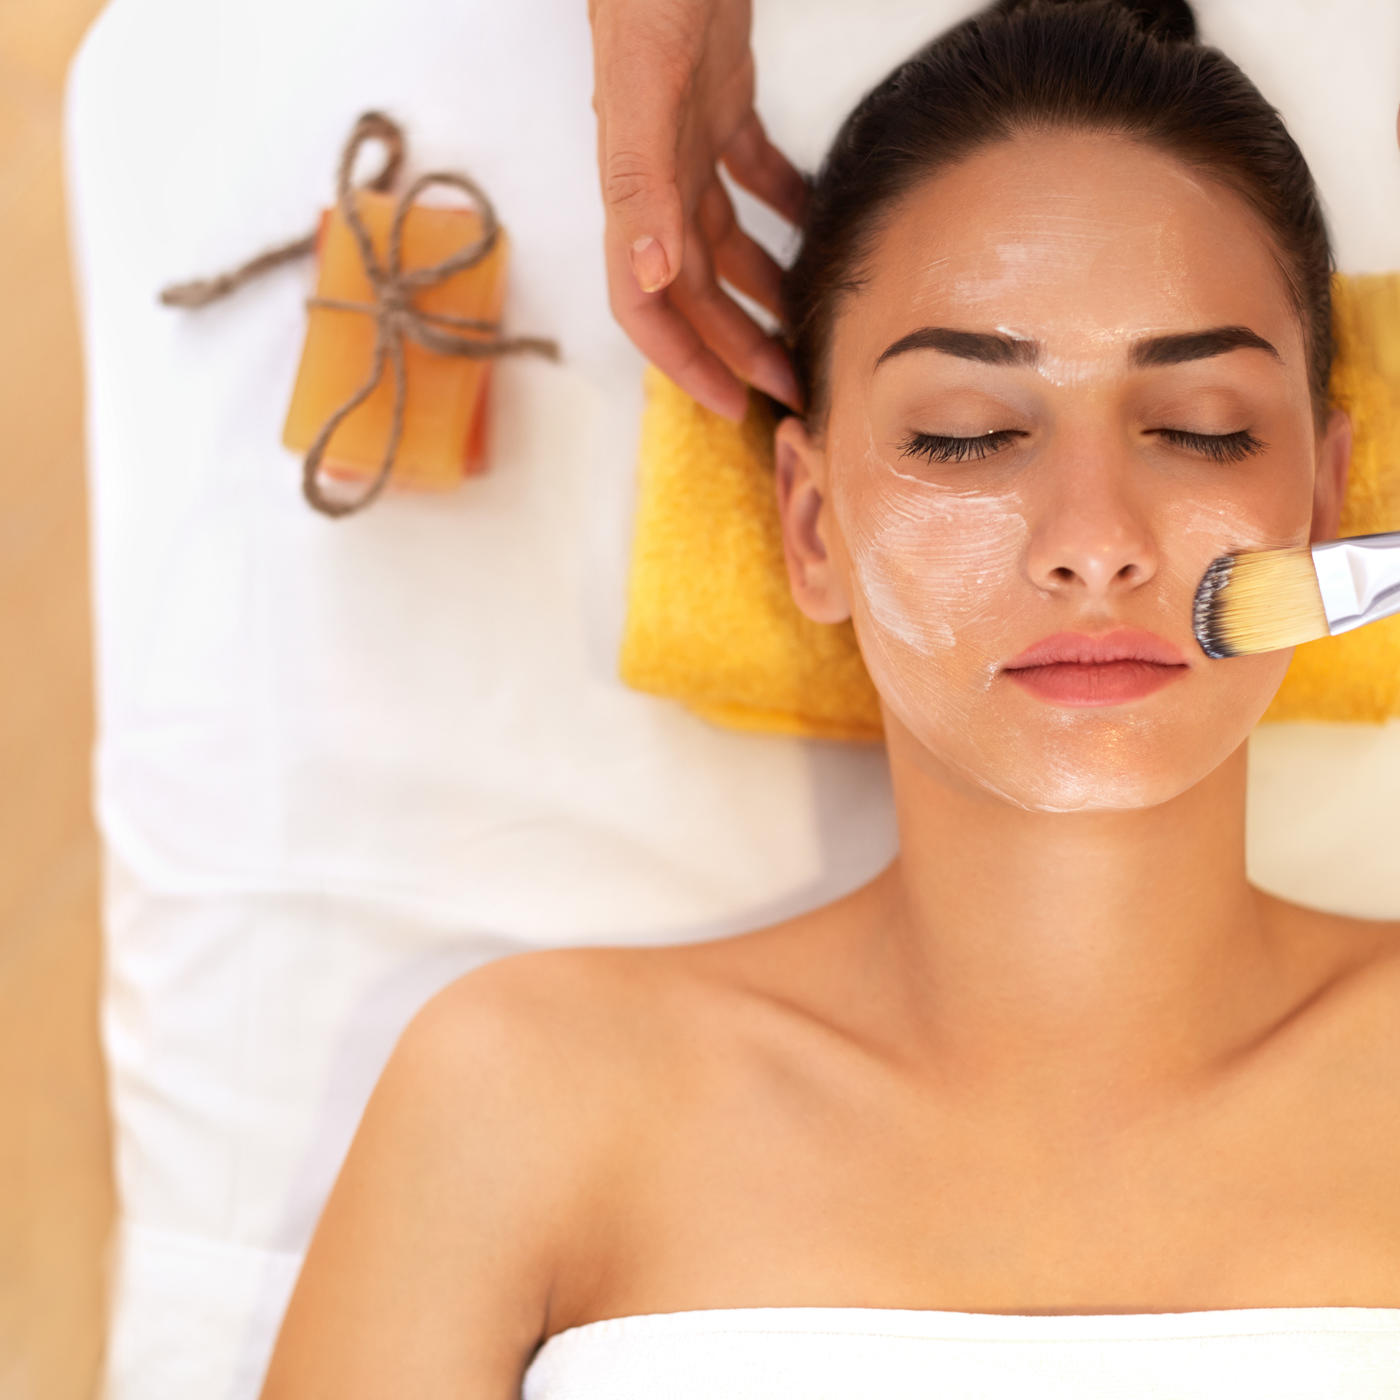 Capotaormina Beauty body facial treatments